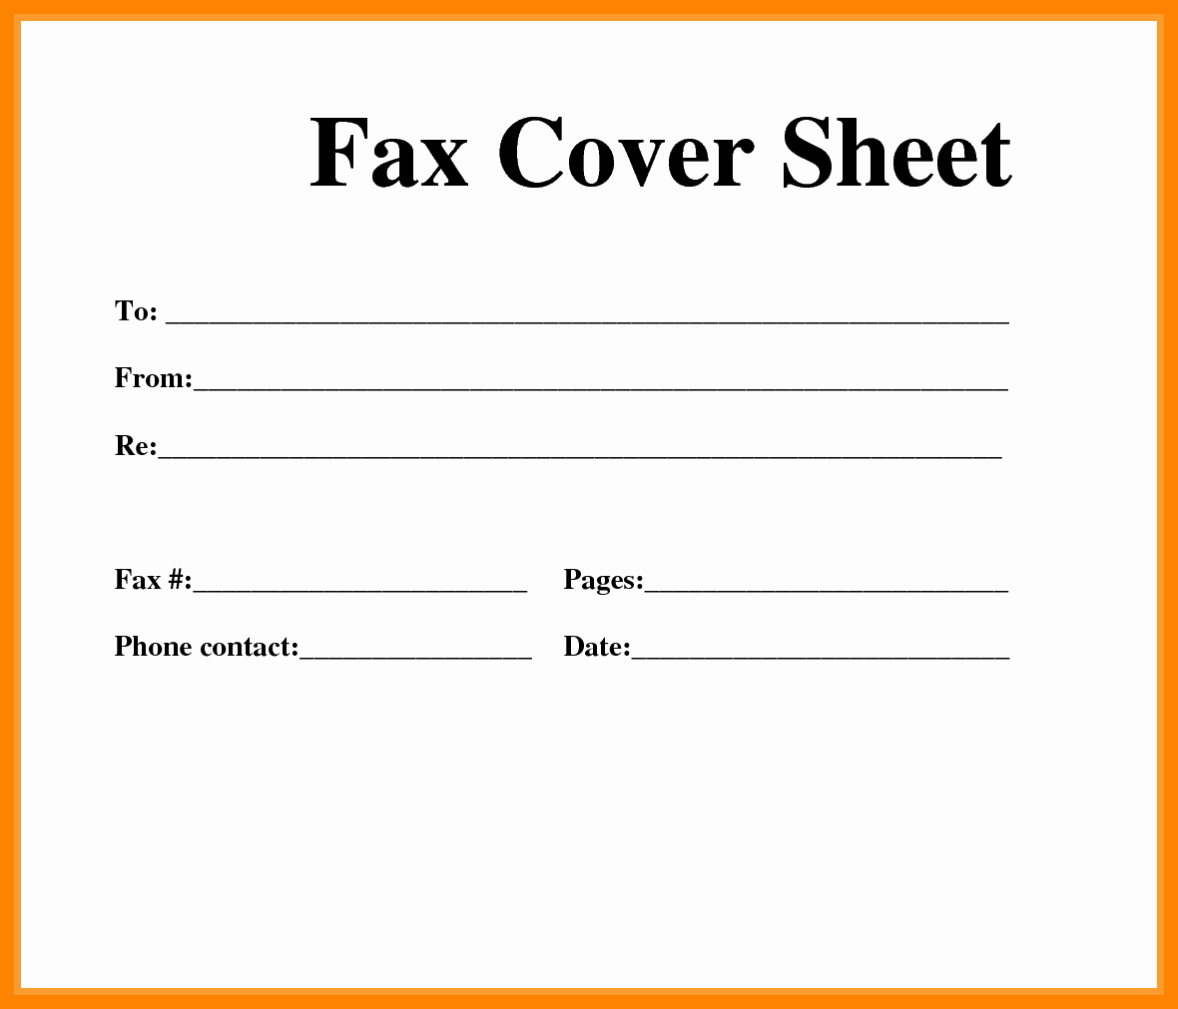 Basic Cover Sheet for Fax Fresh 9 Free Printable Fax Cover Sheets Templates